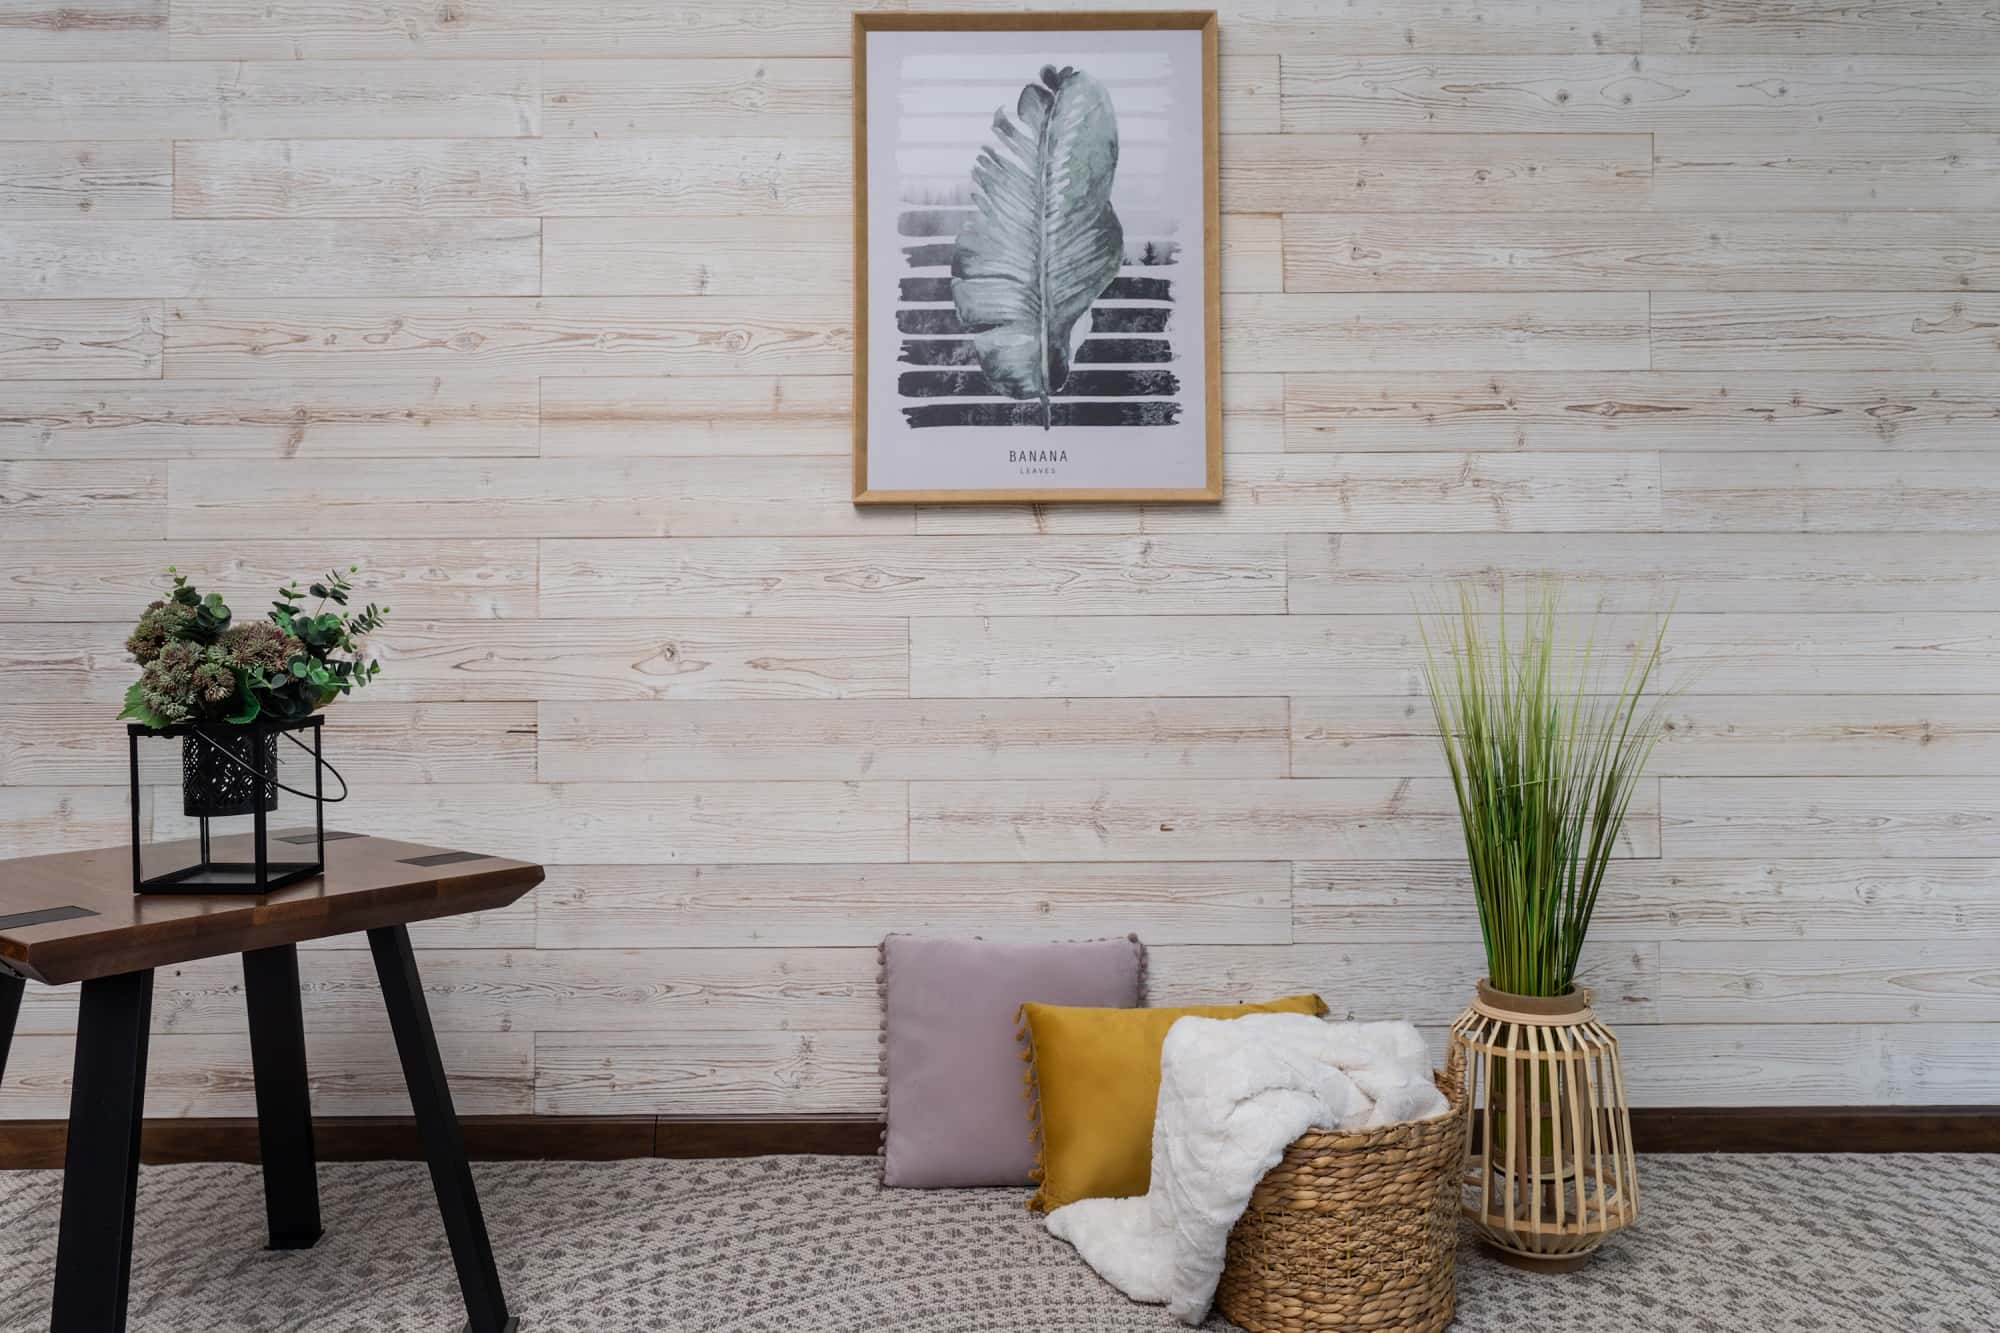 Reclaimed Wood Panels: An Eco-Friendly Way to Enhance Your Home Decor. Minimalsitic modern living room interior with small dark table